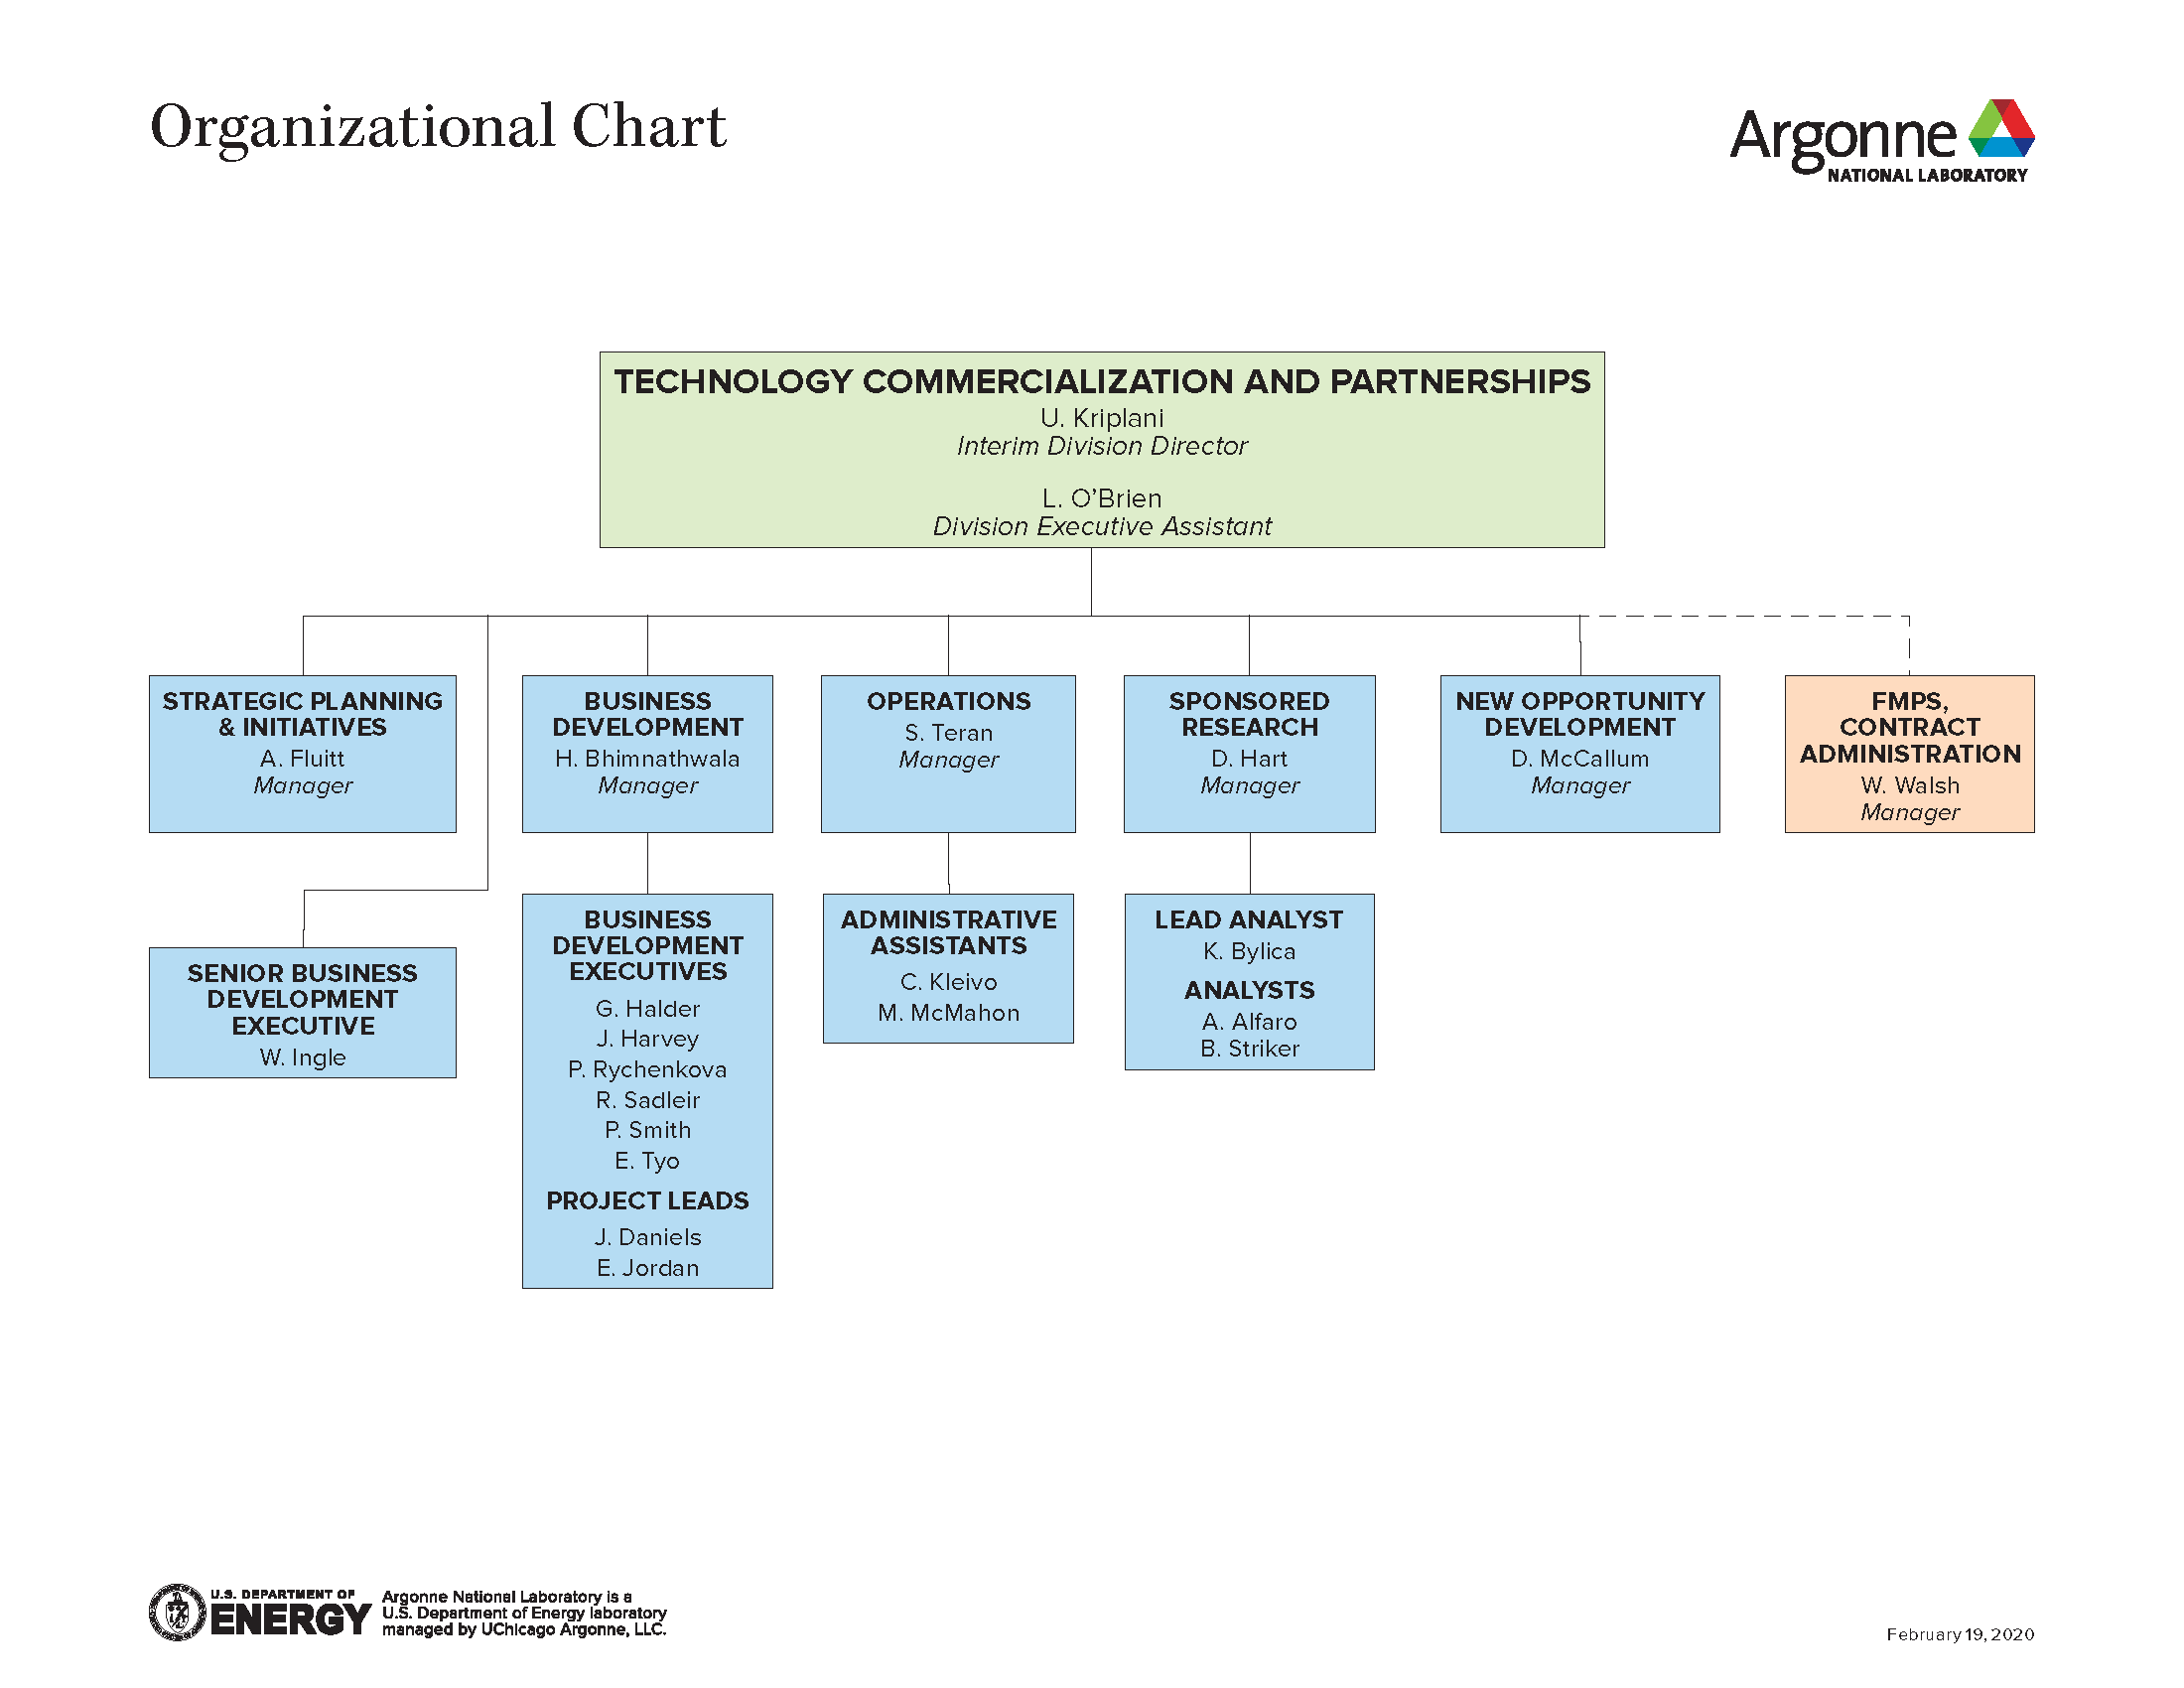 Argonne Technology Commercialization and Partnerships organization chart